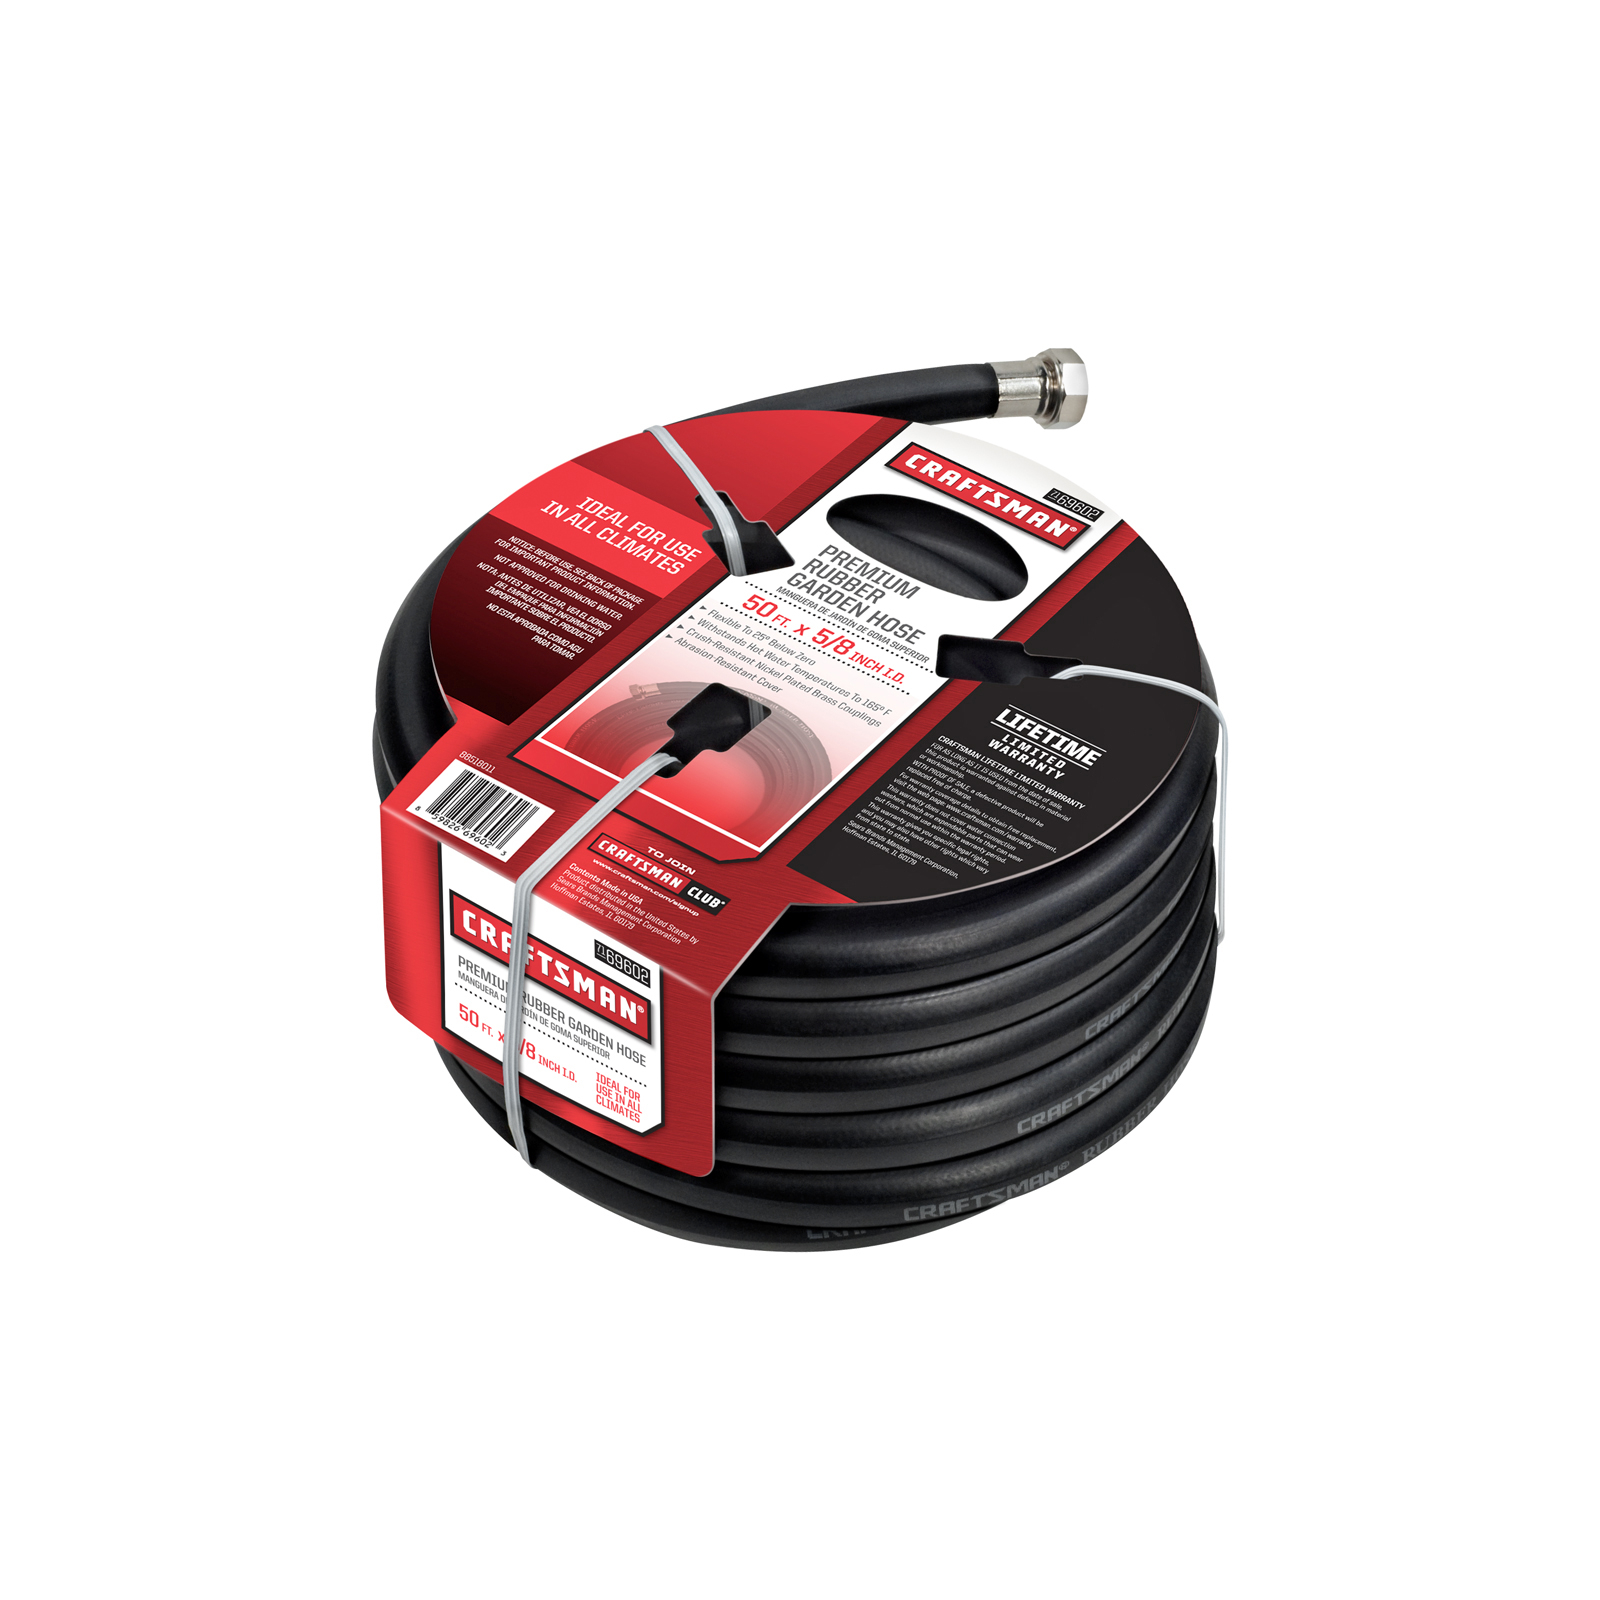 Craftsman 69602 58 x 50 All Rubber Garden Hose Sears